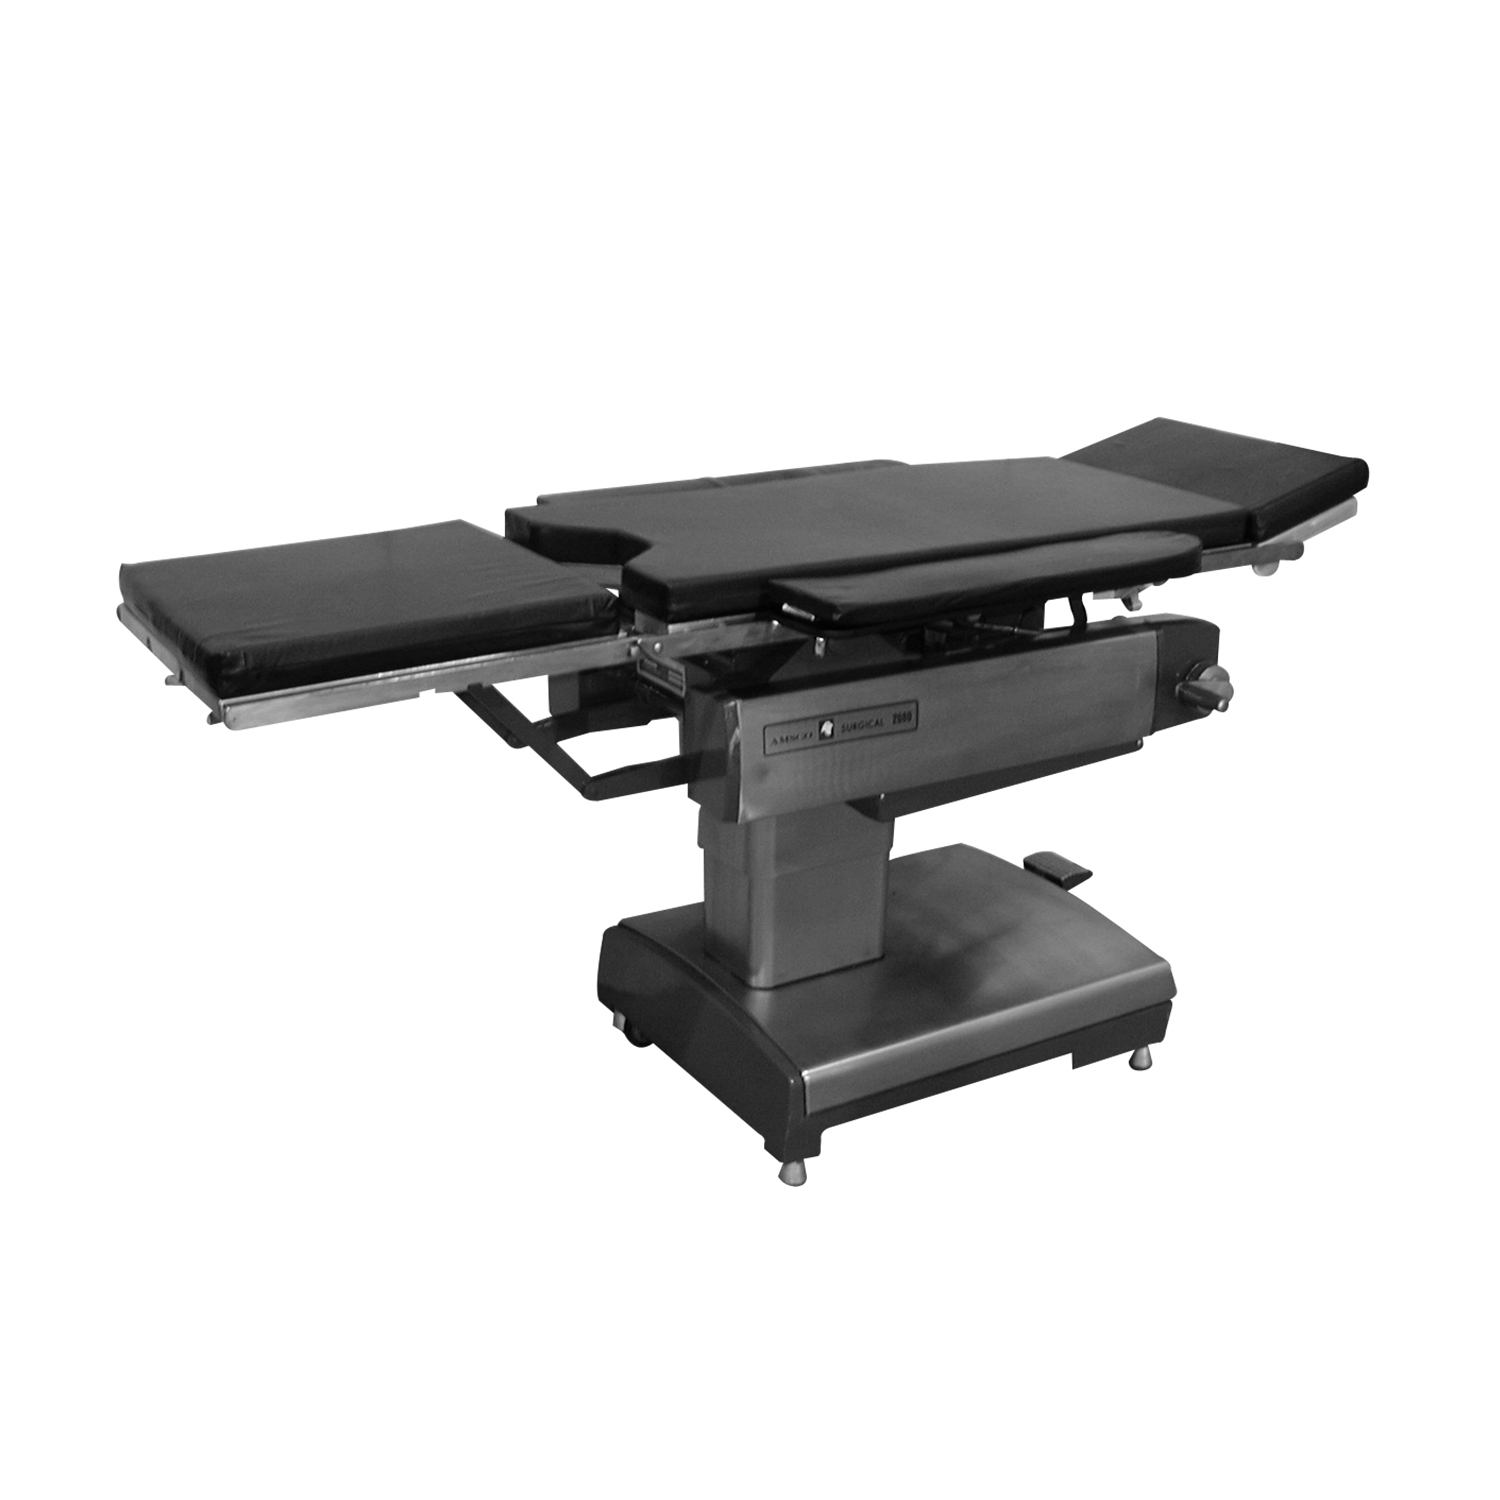 Amsco 2080 Surgical Table